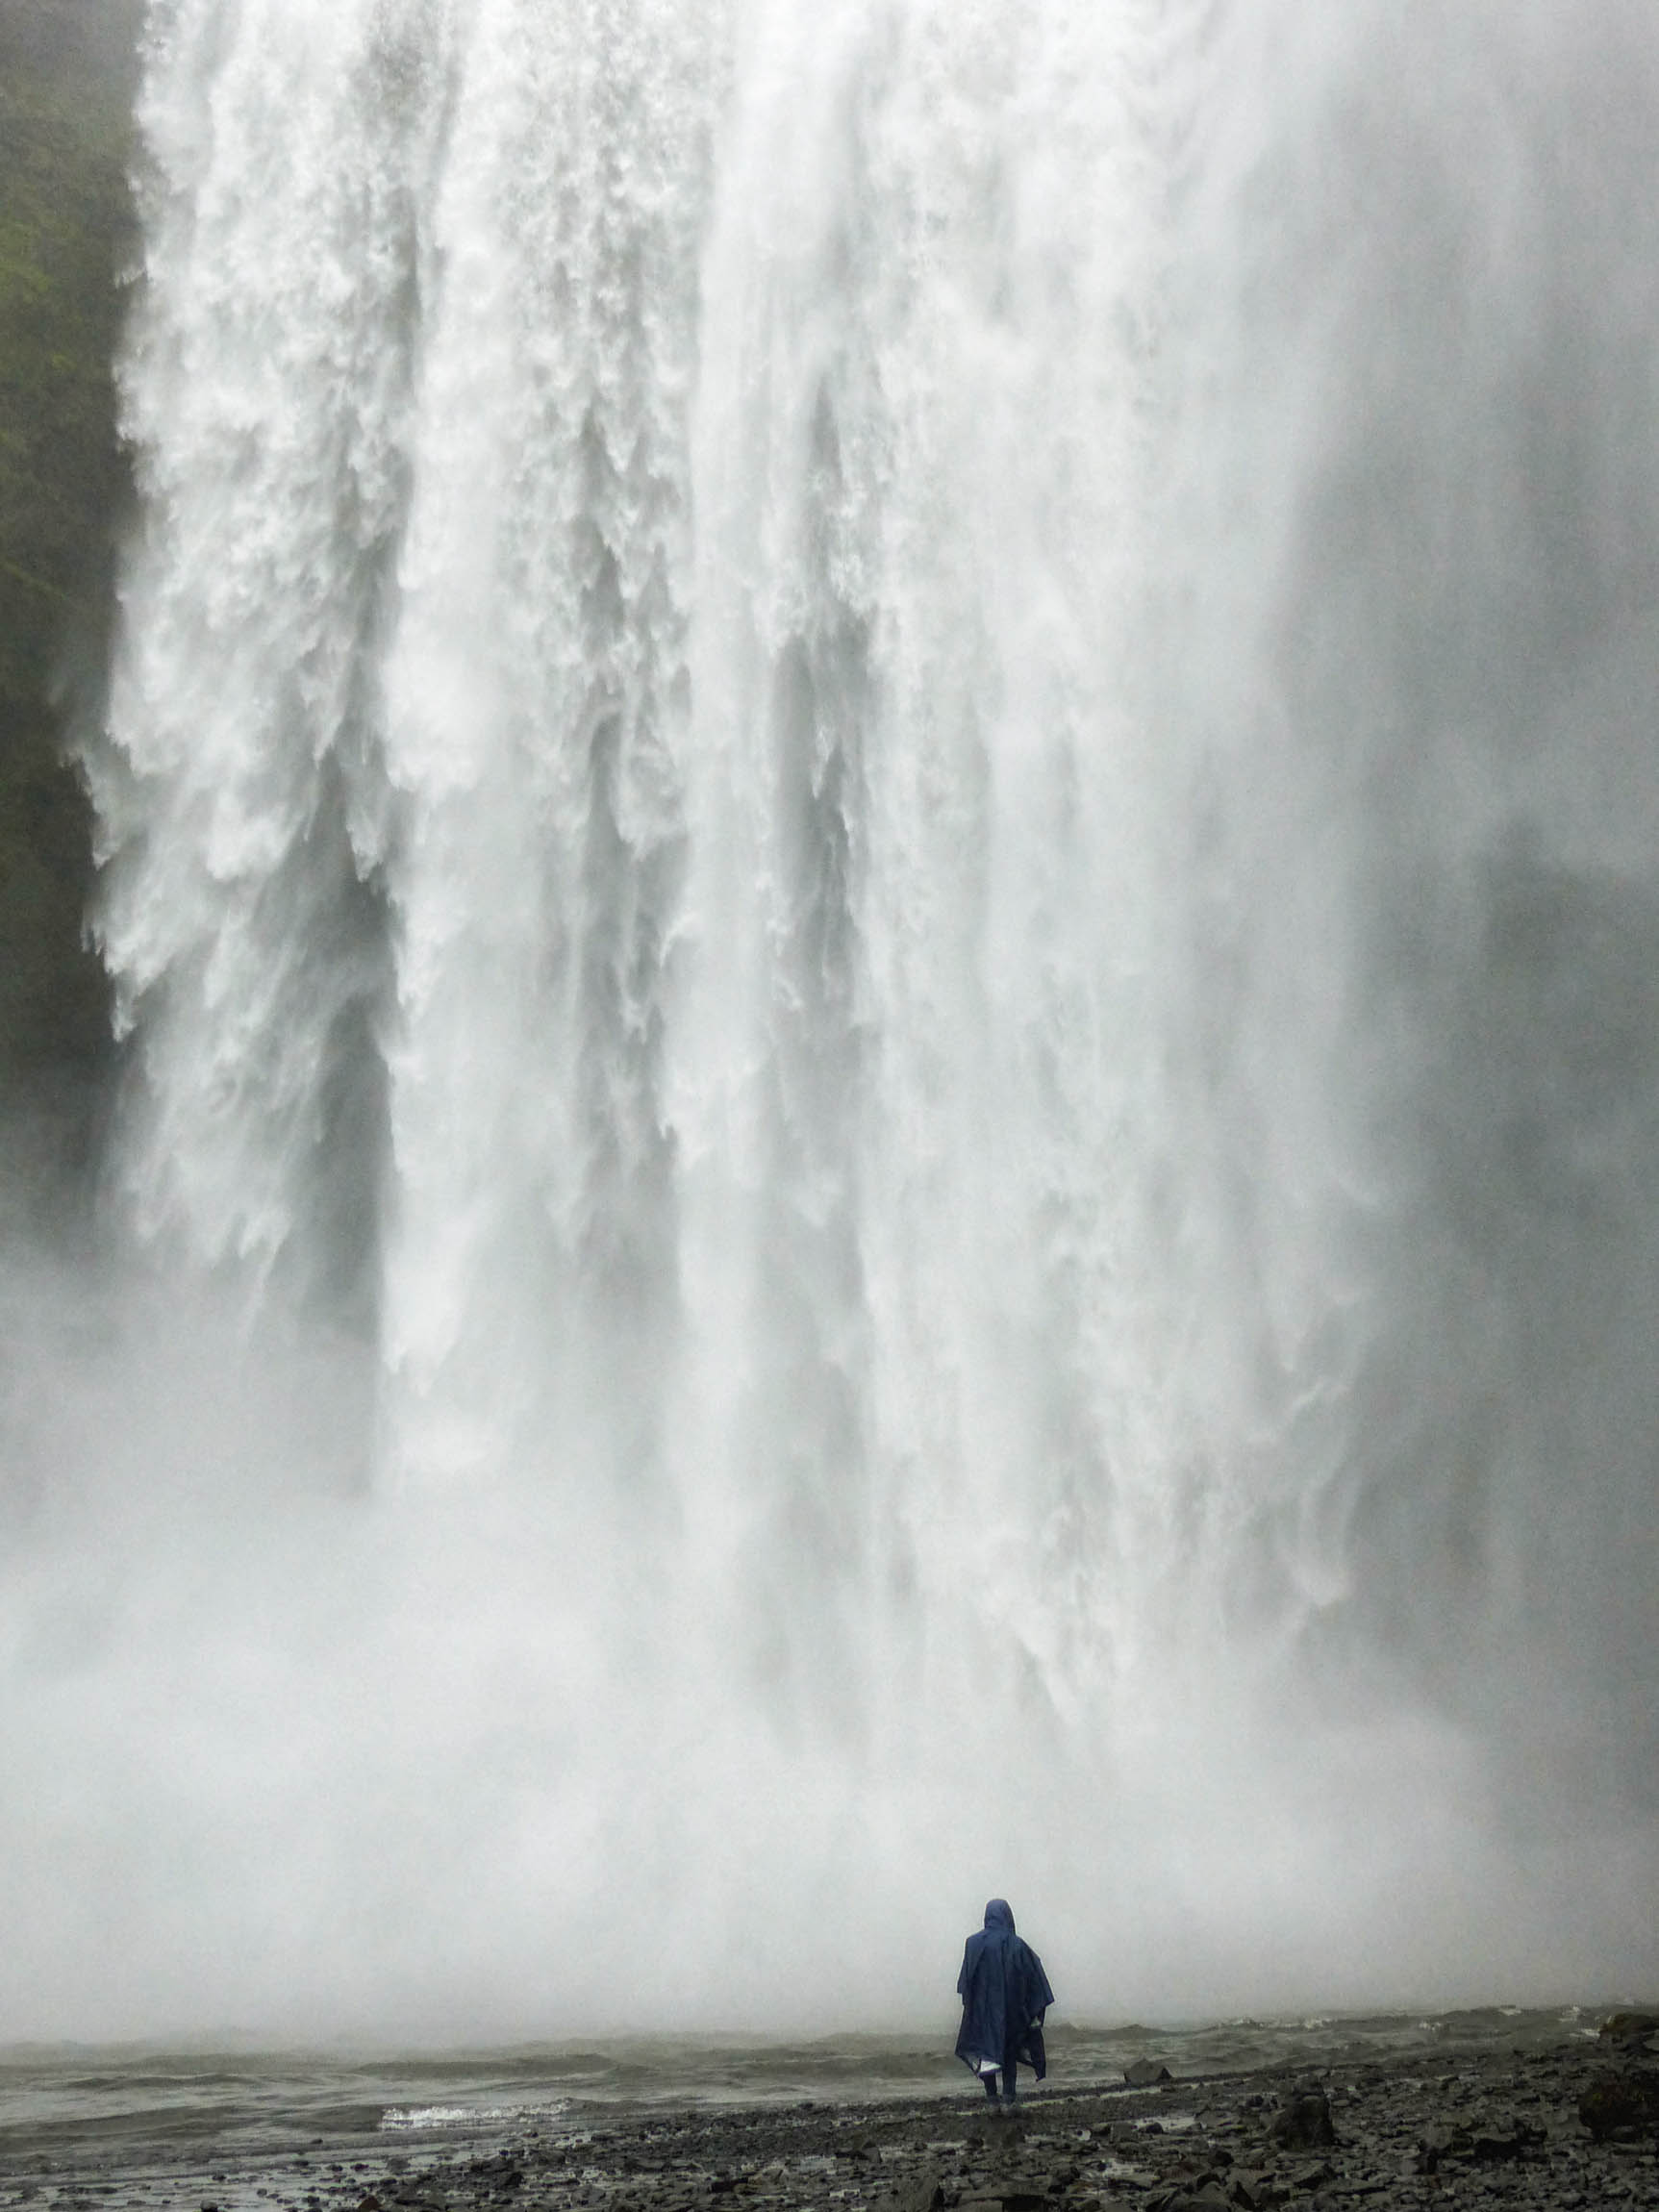 Large waterfall with person in front